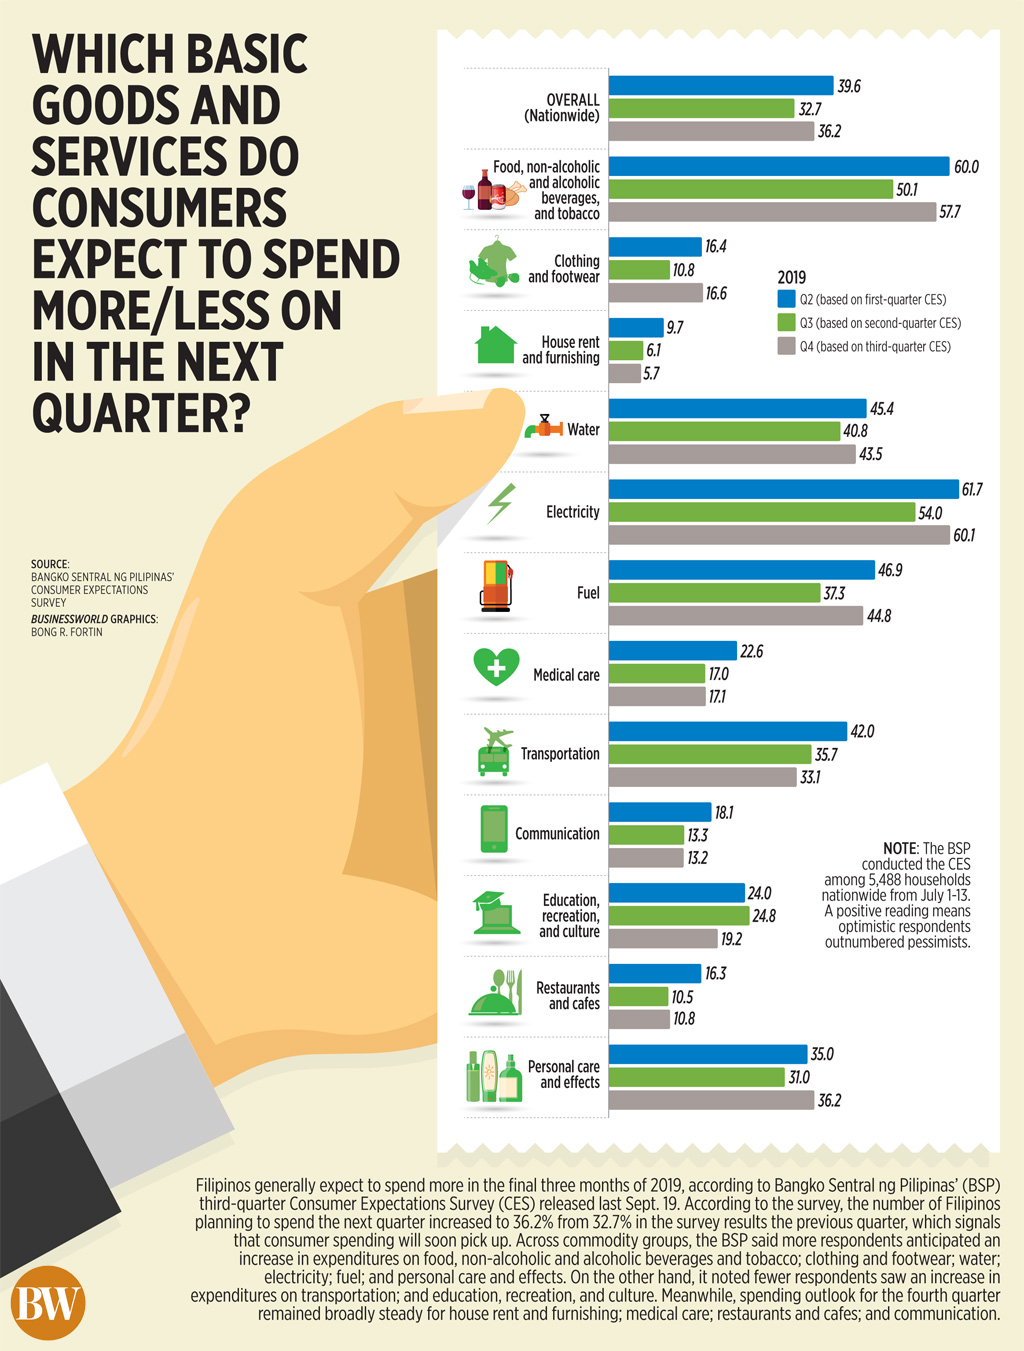 Which basic goods and services do consumers expect to spend more less on in the next